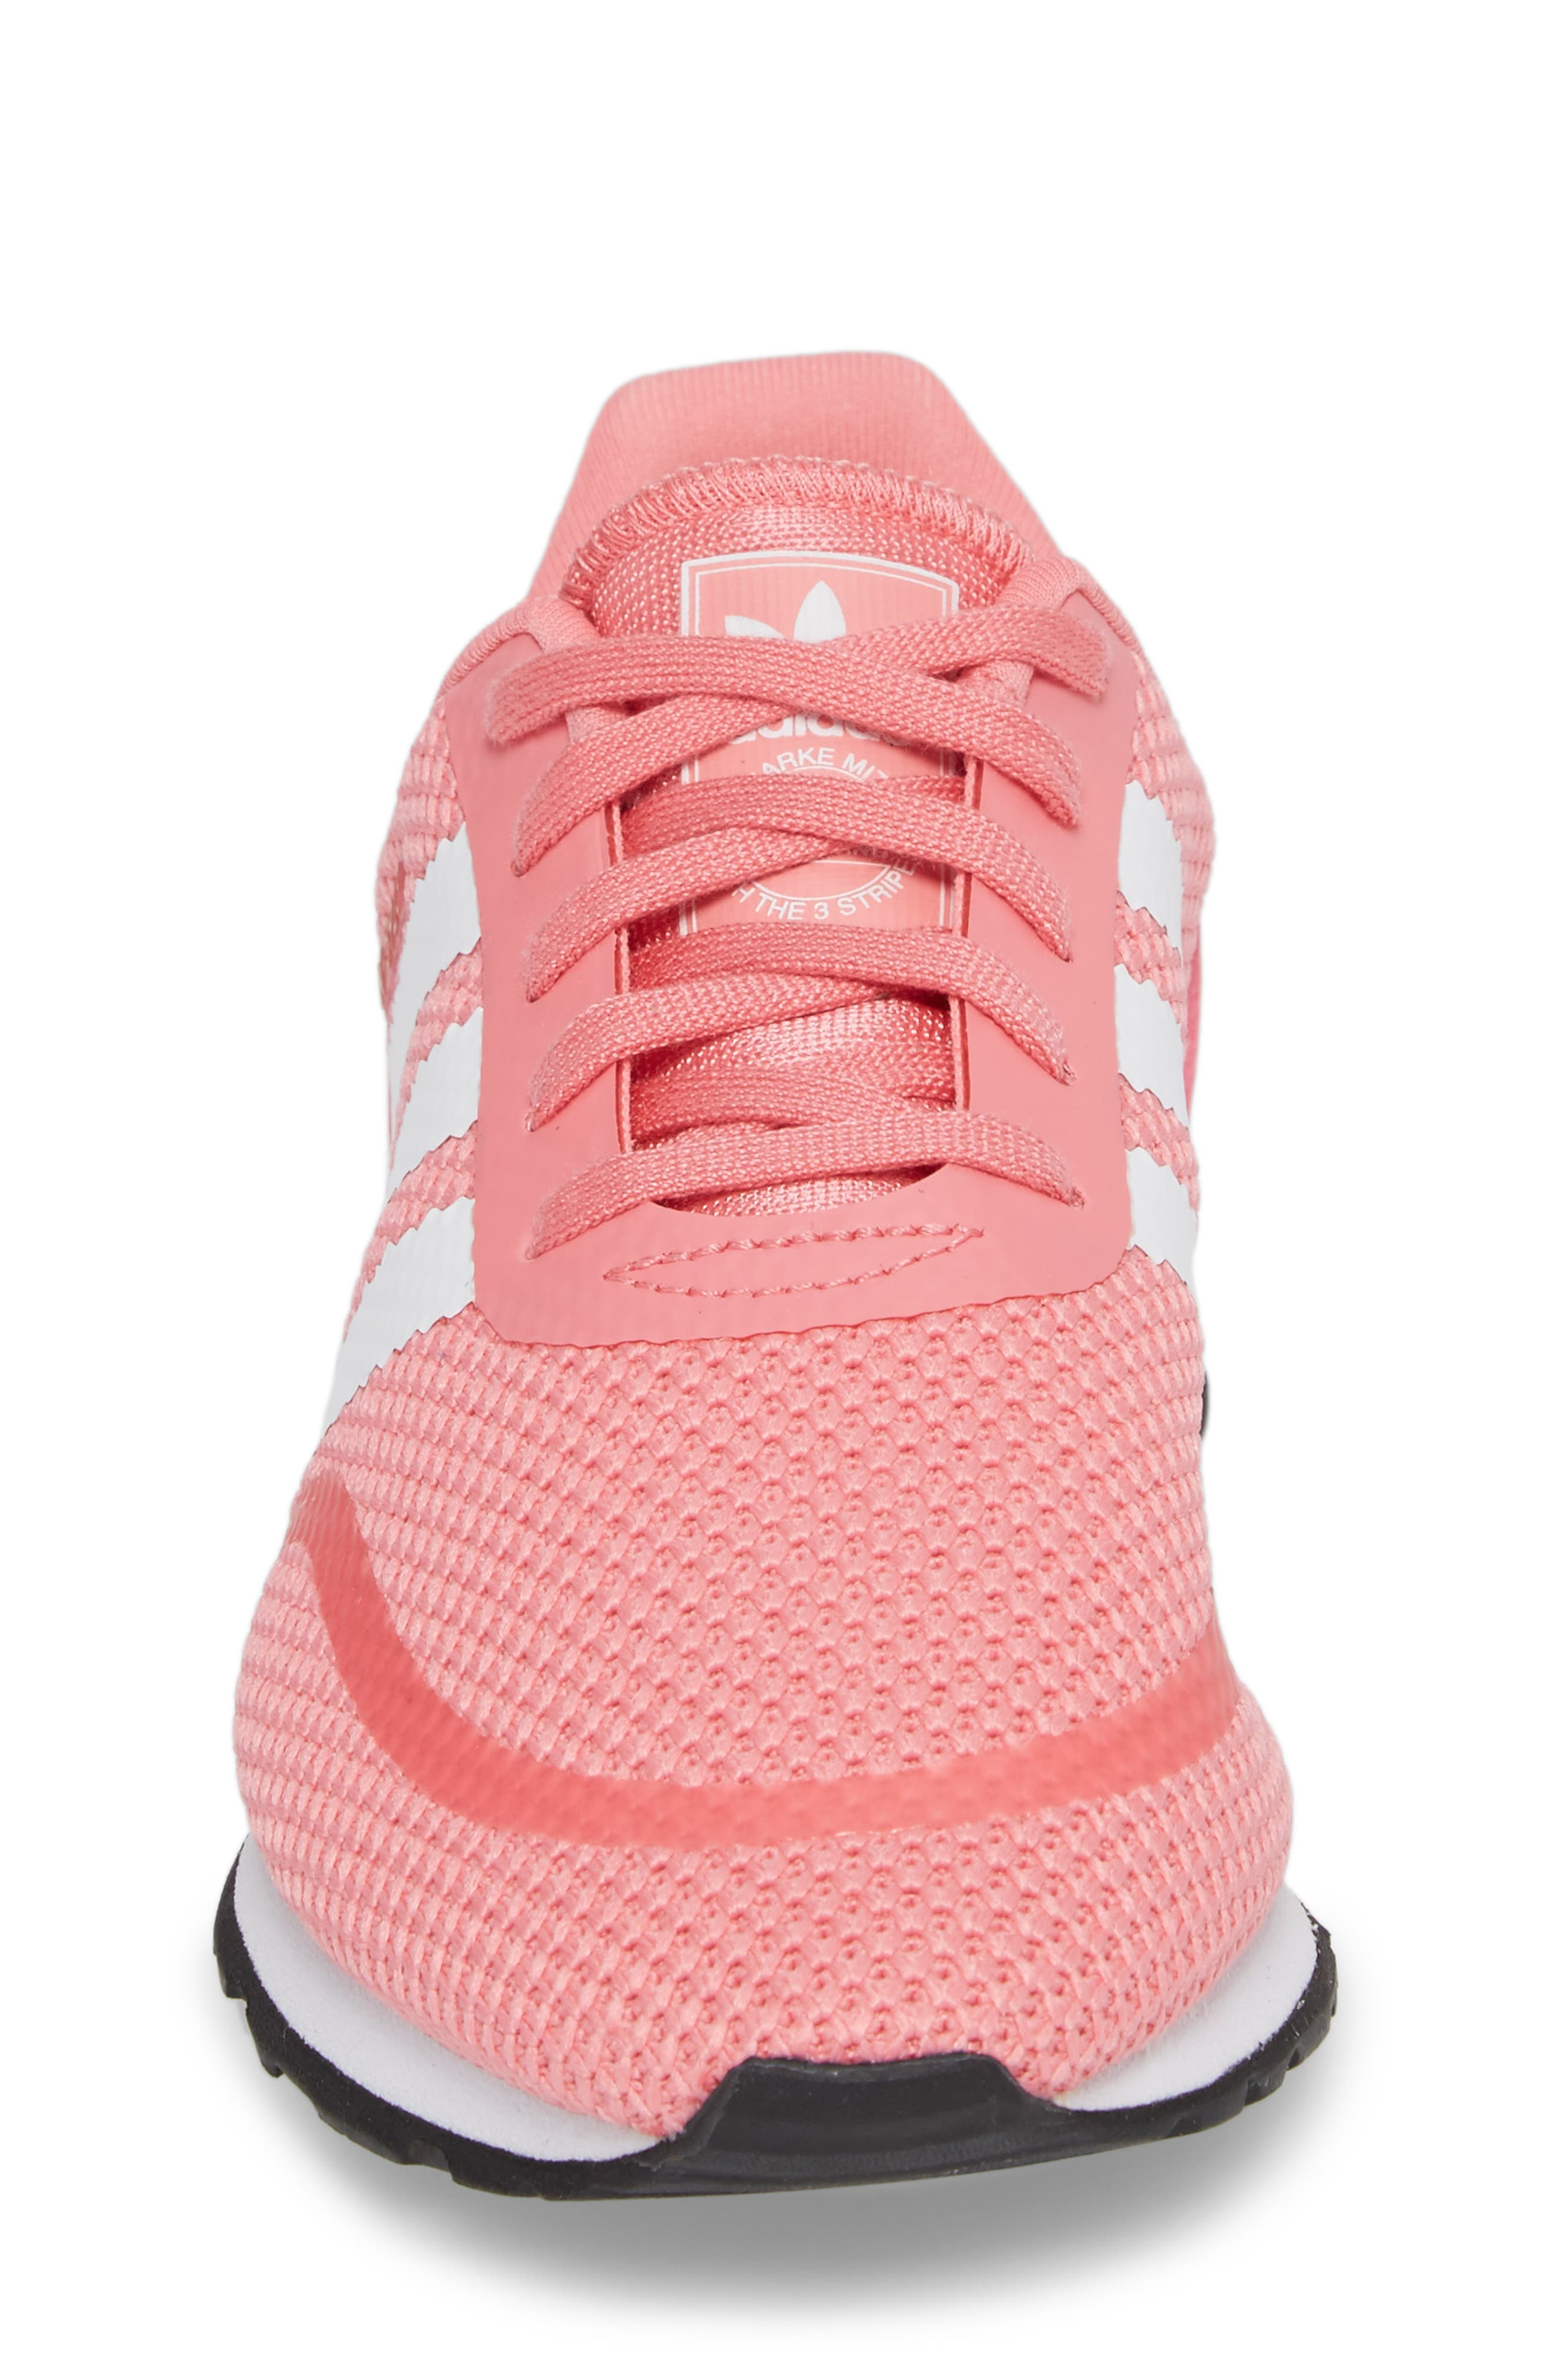 N-5923 Sneaker,                             Alternate thumbnail 24, color,